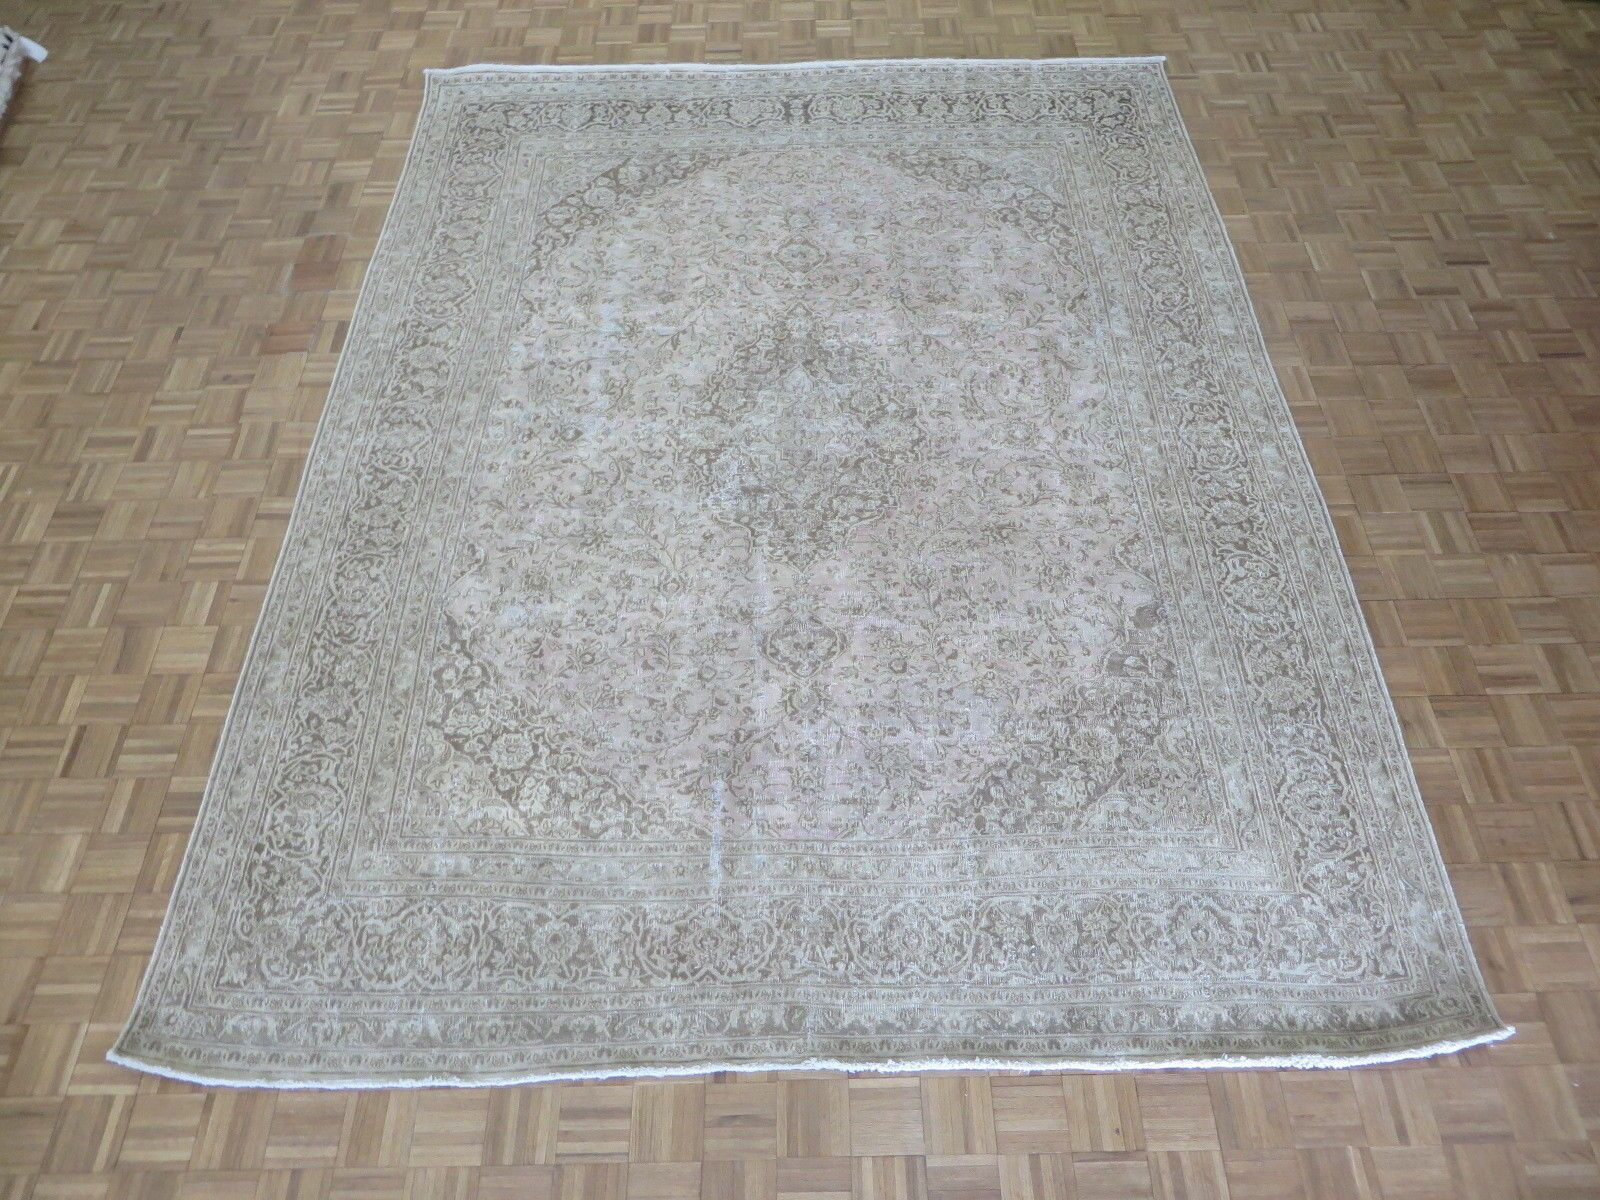 One-of-a-Kind Edinburgh Over-dyed Persian Hand-Knotted Wool Brown Area Rug